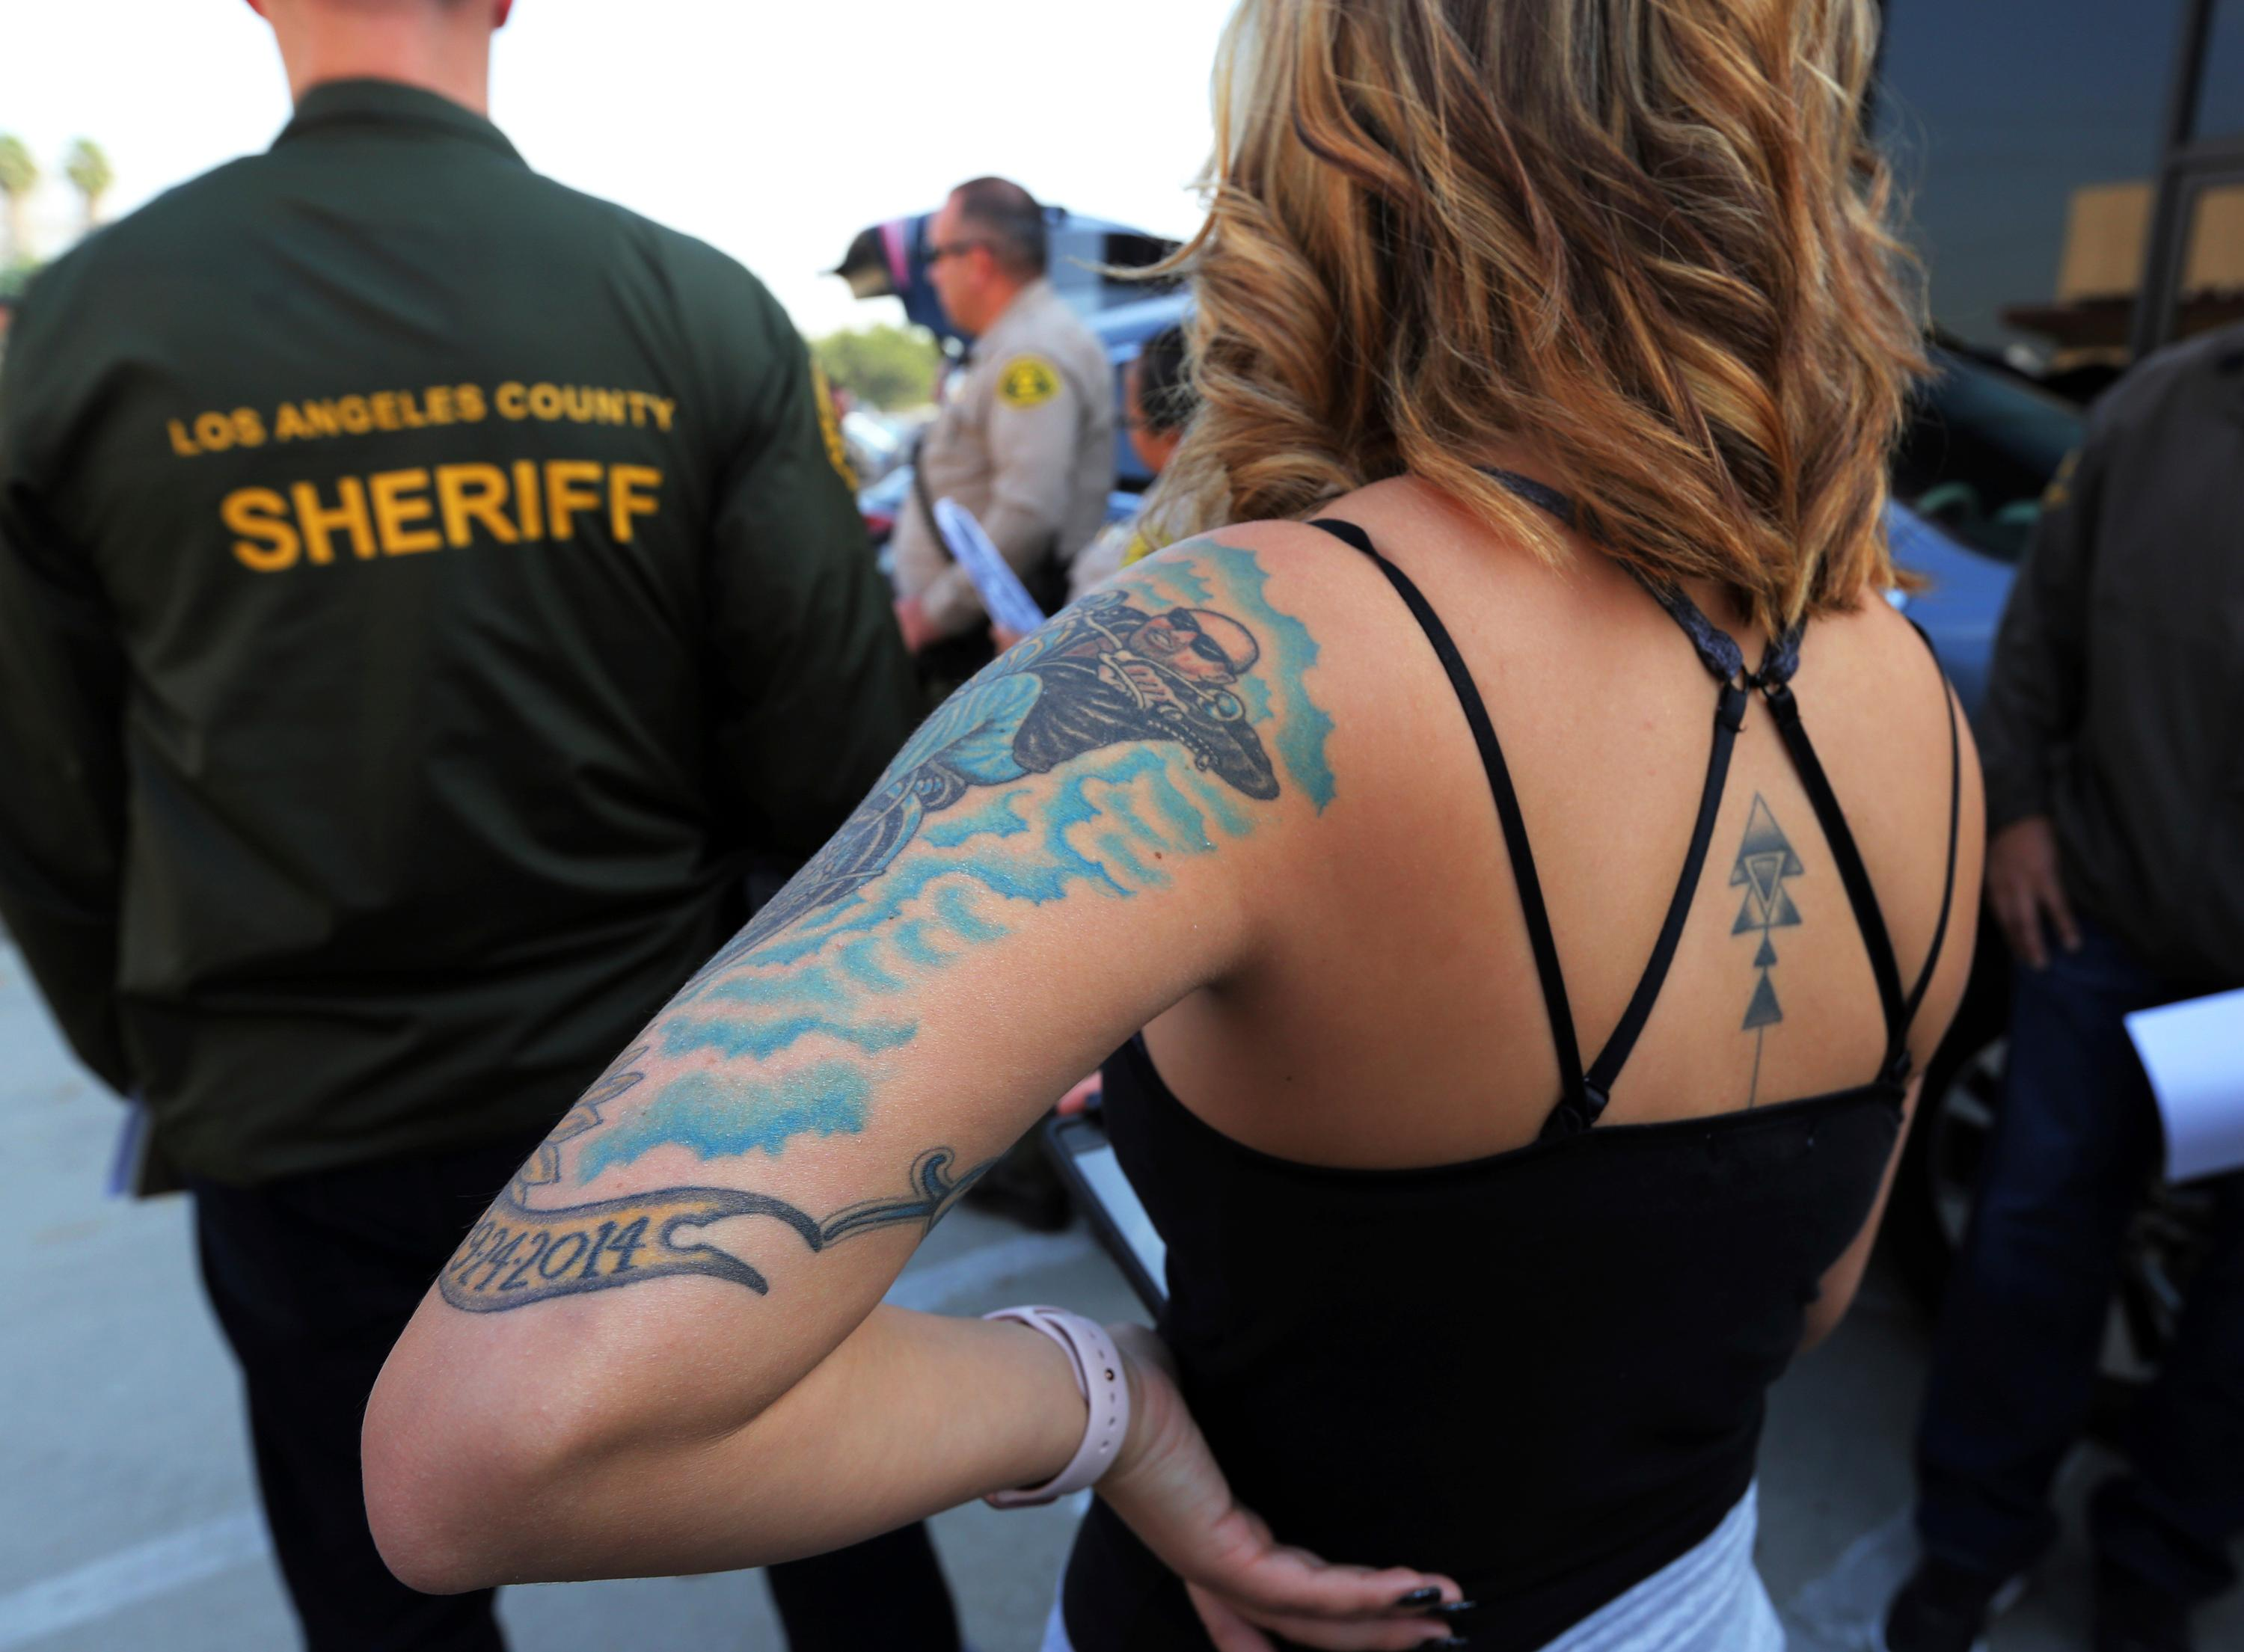 In this Wednesday, Nov. 15, 2017 photo, before an undercover sting operation, a sheriff's deputy who will pose as a prostitute listens at a briefing in Compton, Calif., a city some 15 miles south of Los Angeles.  (AP Photo/Reed Saxon)